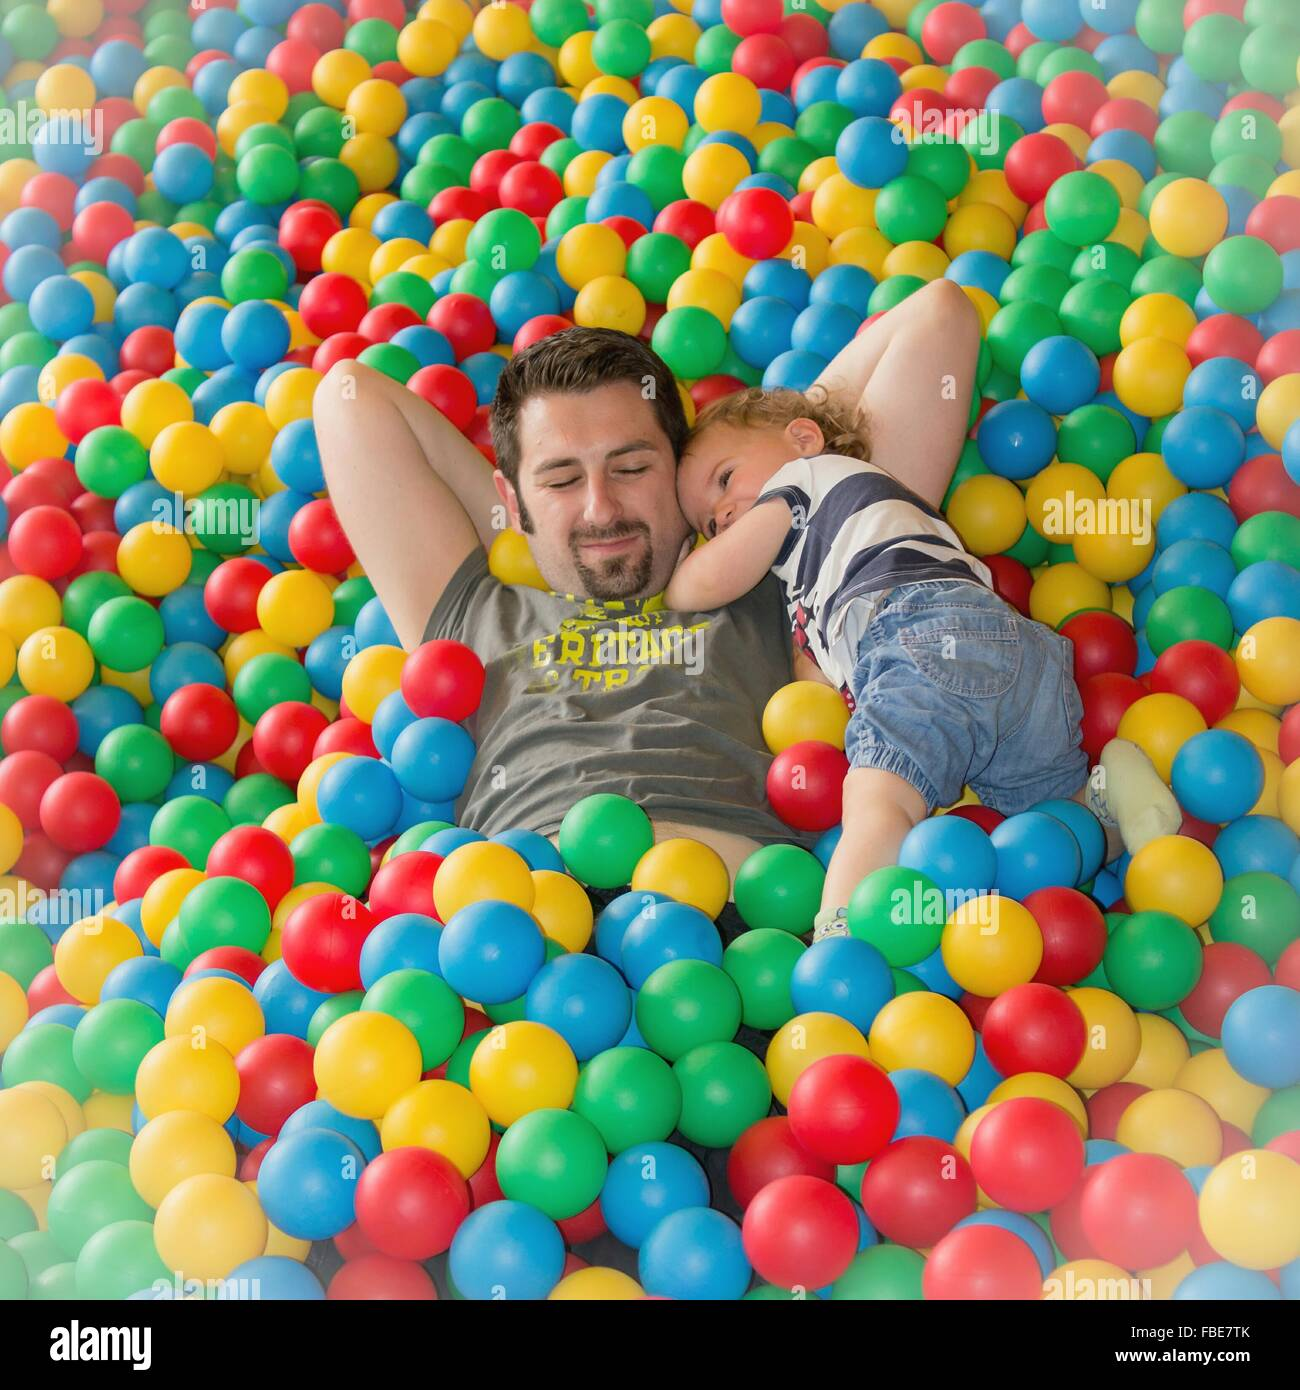 Father Lying In Balls With Son - Stock Image